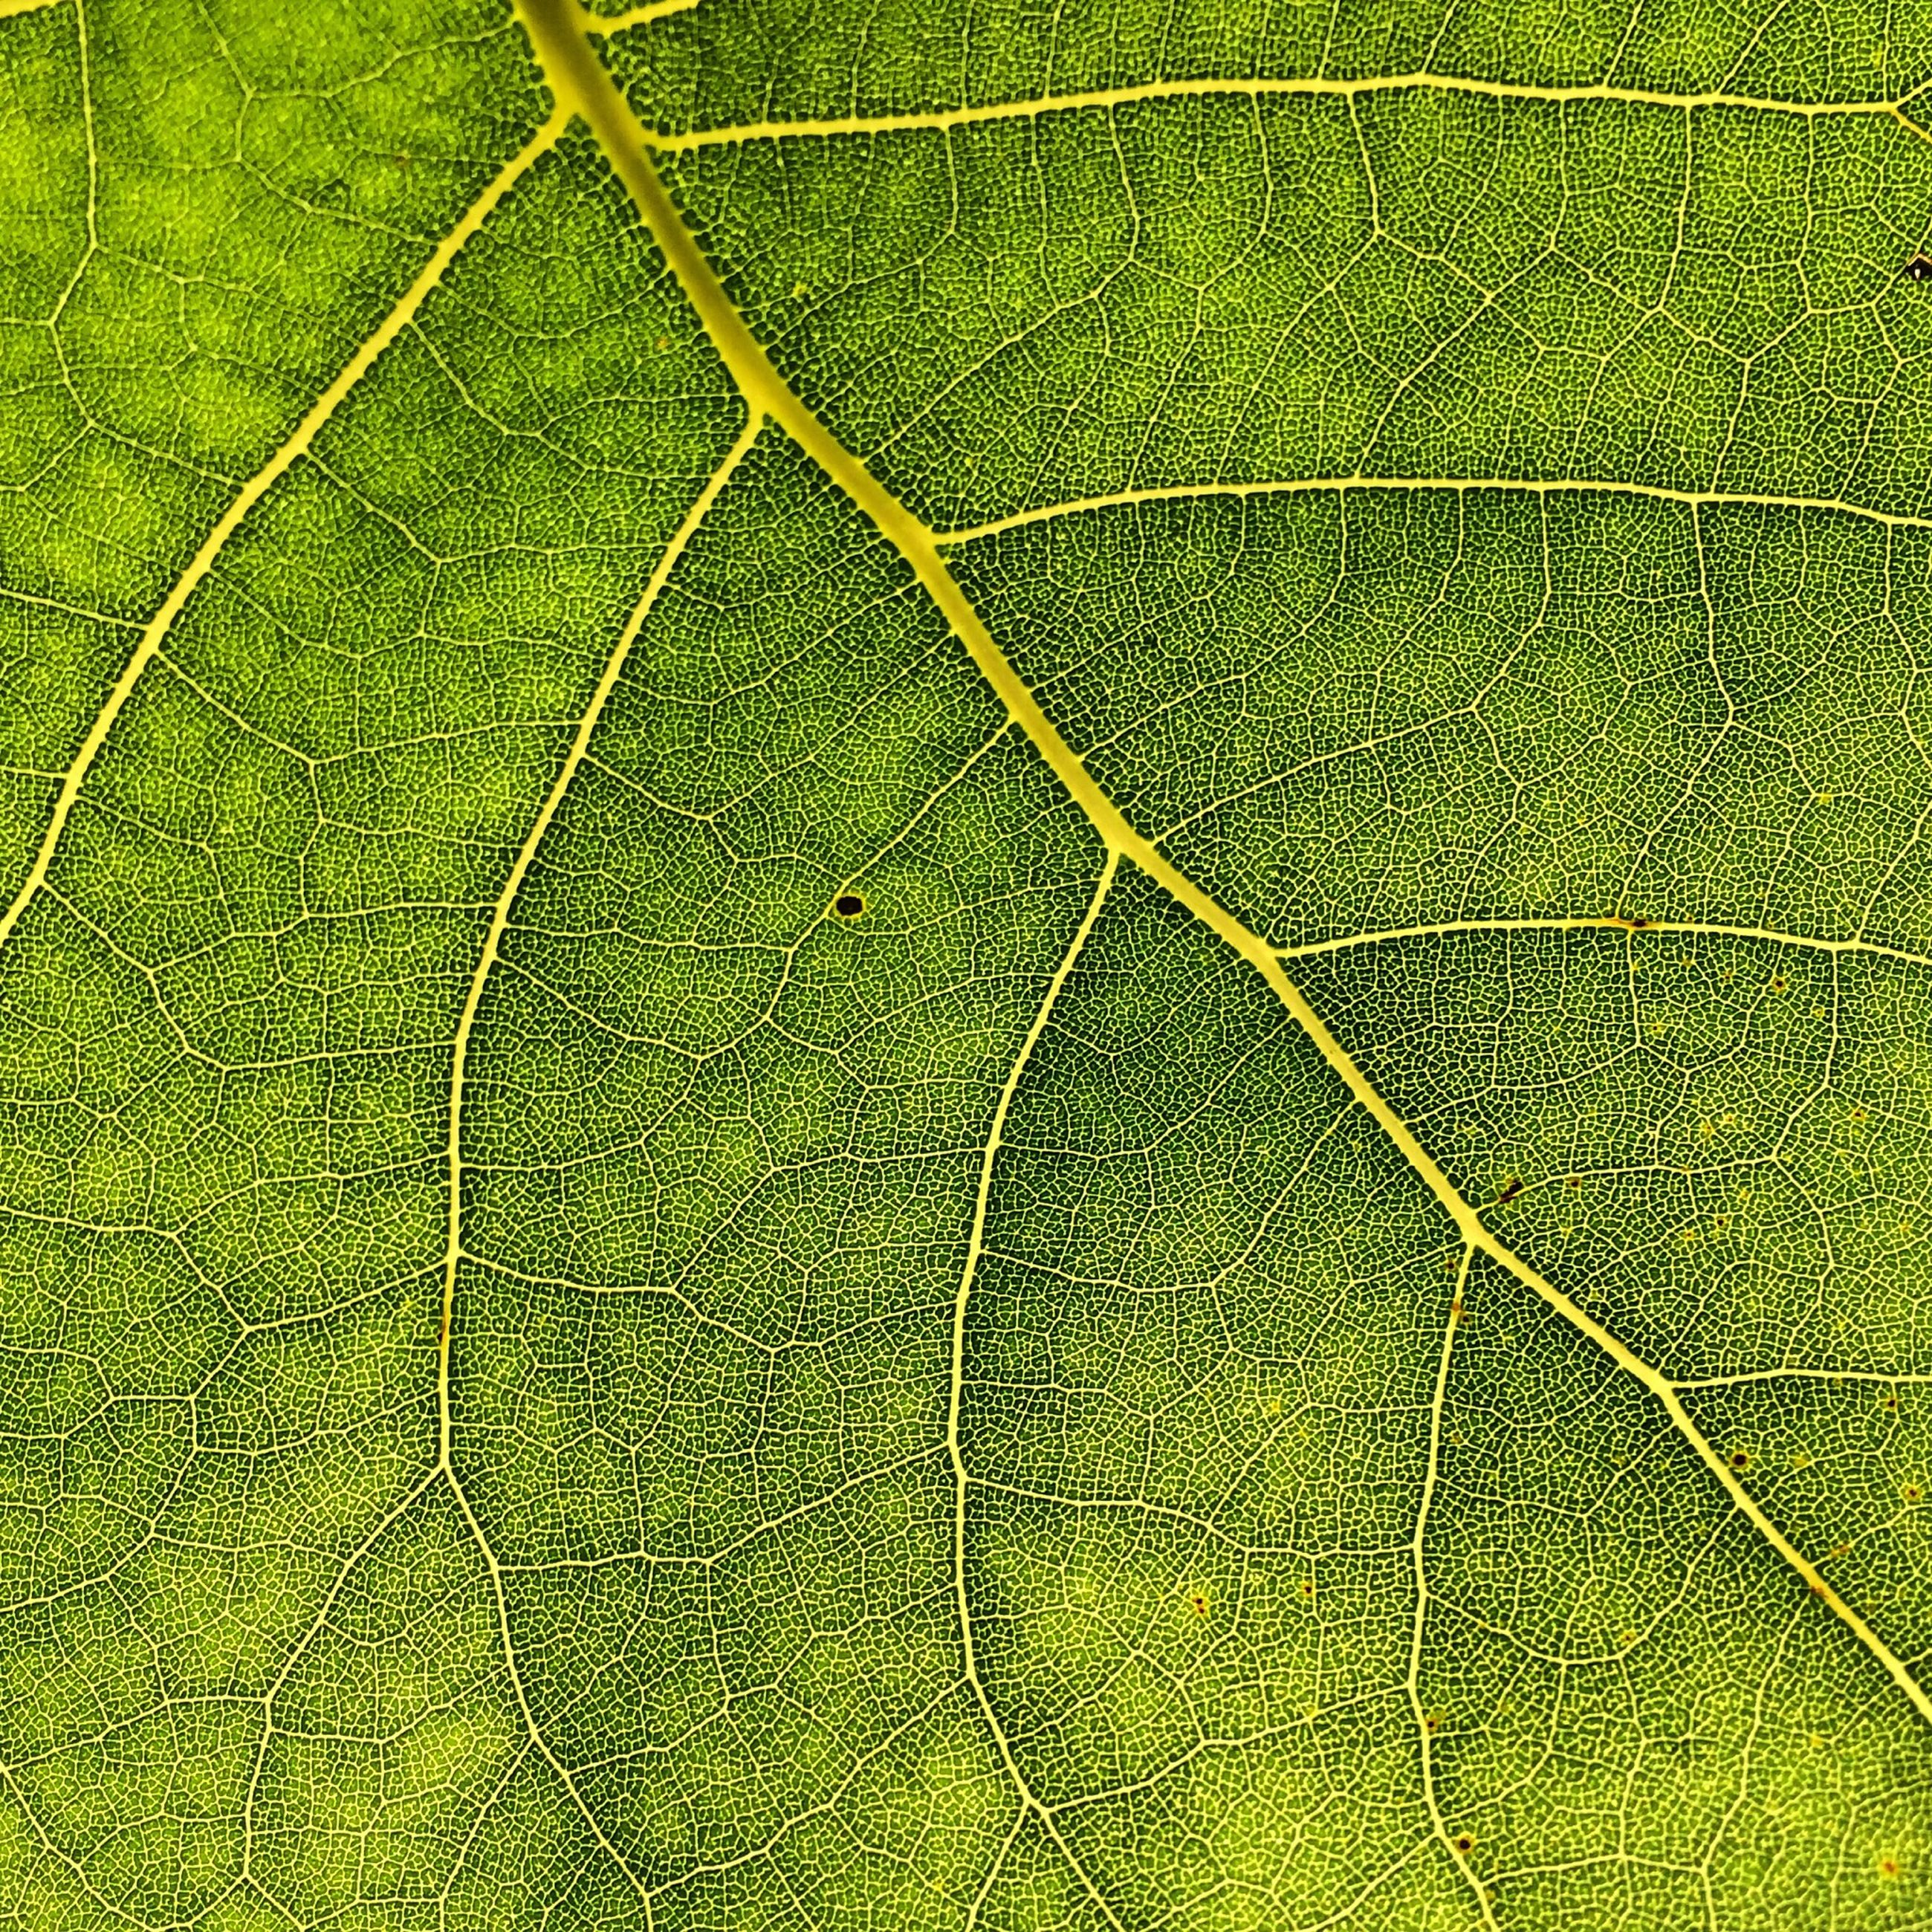 full frame, green color, backgrounds, pattern, textured, close-up, grass, leaf, growth, nature, natural pattern, green, high angle view, no people, day, outdoors, detail, leaf vein, sunlight, field